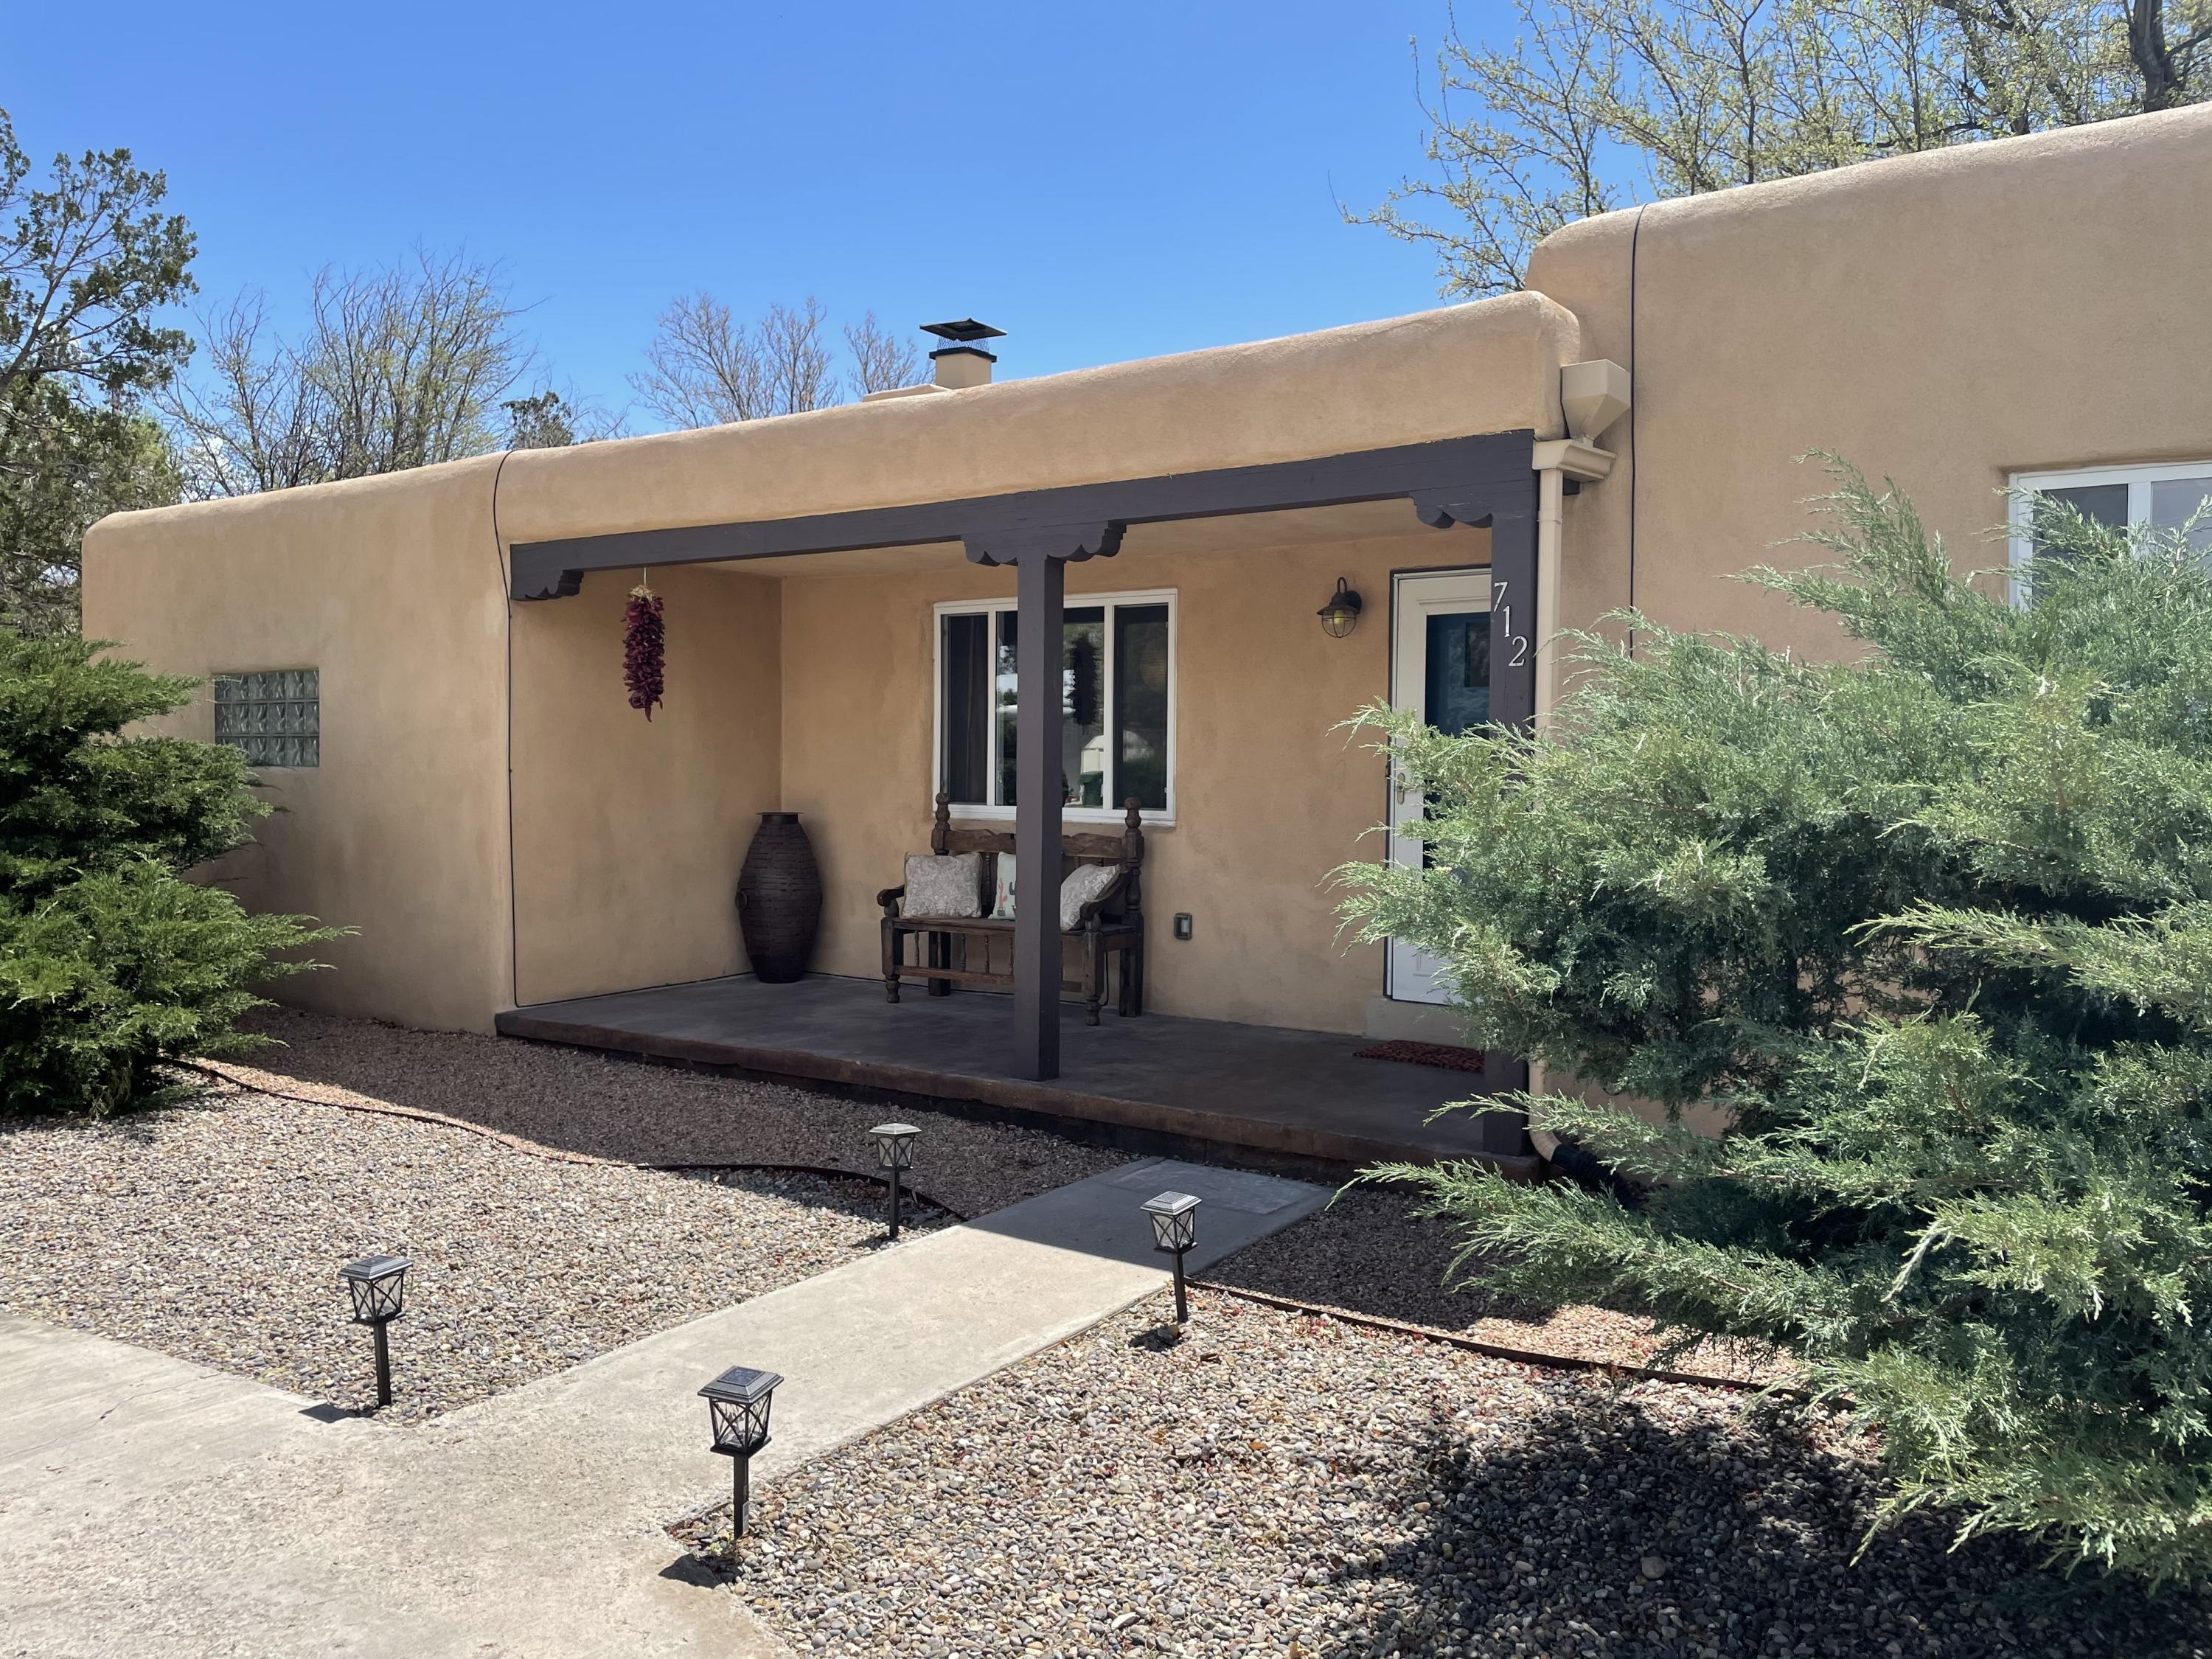 An incredible opportunity to buy in coveted los Ranchos De Albuquerque! Situated on 1/2 an acre made up of two lots, this little casa is the epitome of charming. So very clean! The hardwood floors are freshly redone and they look AMAZING! The natural light in this house is fantastic! Way too many updates to mention here but highlights include all appliances, counter tops, lighting, flooring, windows and on and on. The possibilities with this lot are endless; a massive garden, animals, a pool and big addition...or live in the front while you build your dream house in the back! Supremely located a stones throw from the 4th street retail corridor, the acequias, Bike trails public transport and every conceivable service an amenity. Please see showing instructions! Request a private showing today